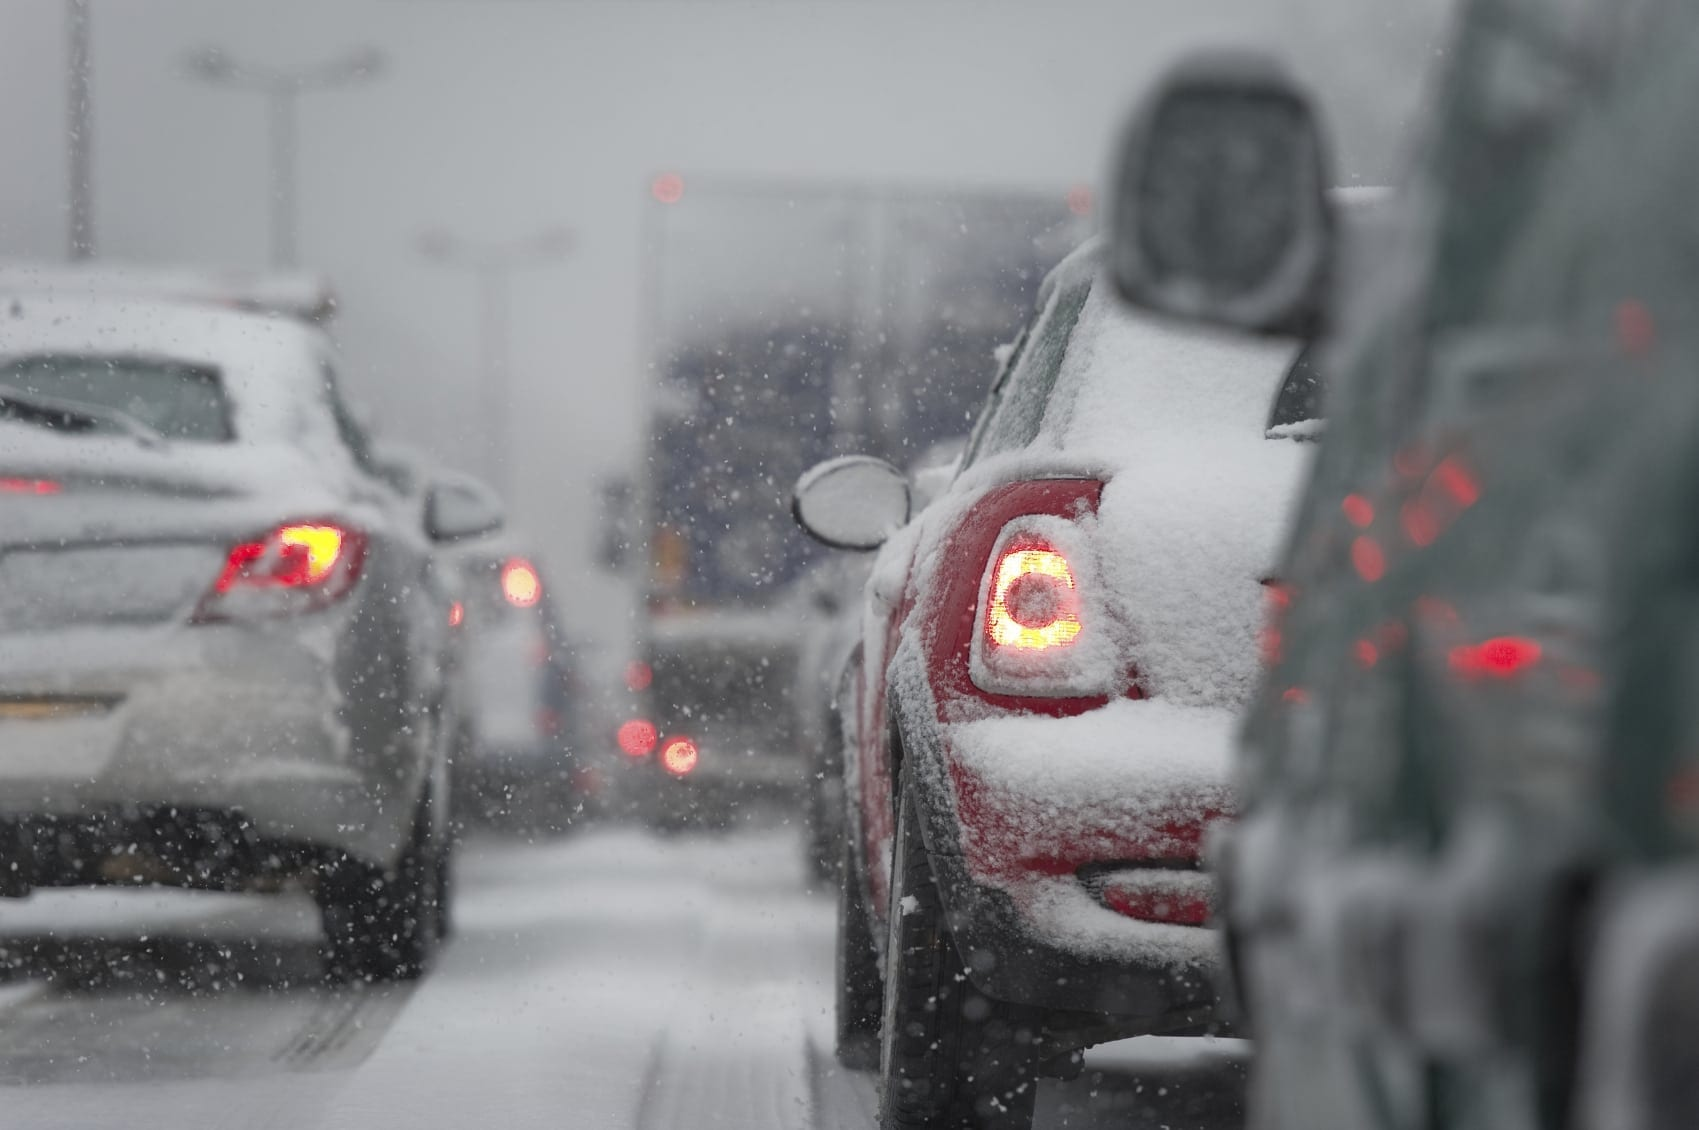 Make Sure To Follow These Winter Driving Tips To Ensure Your Safety